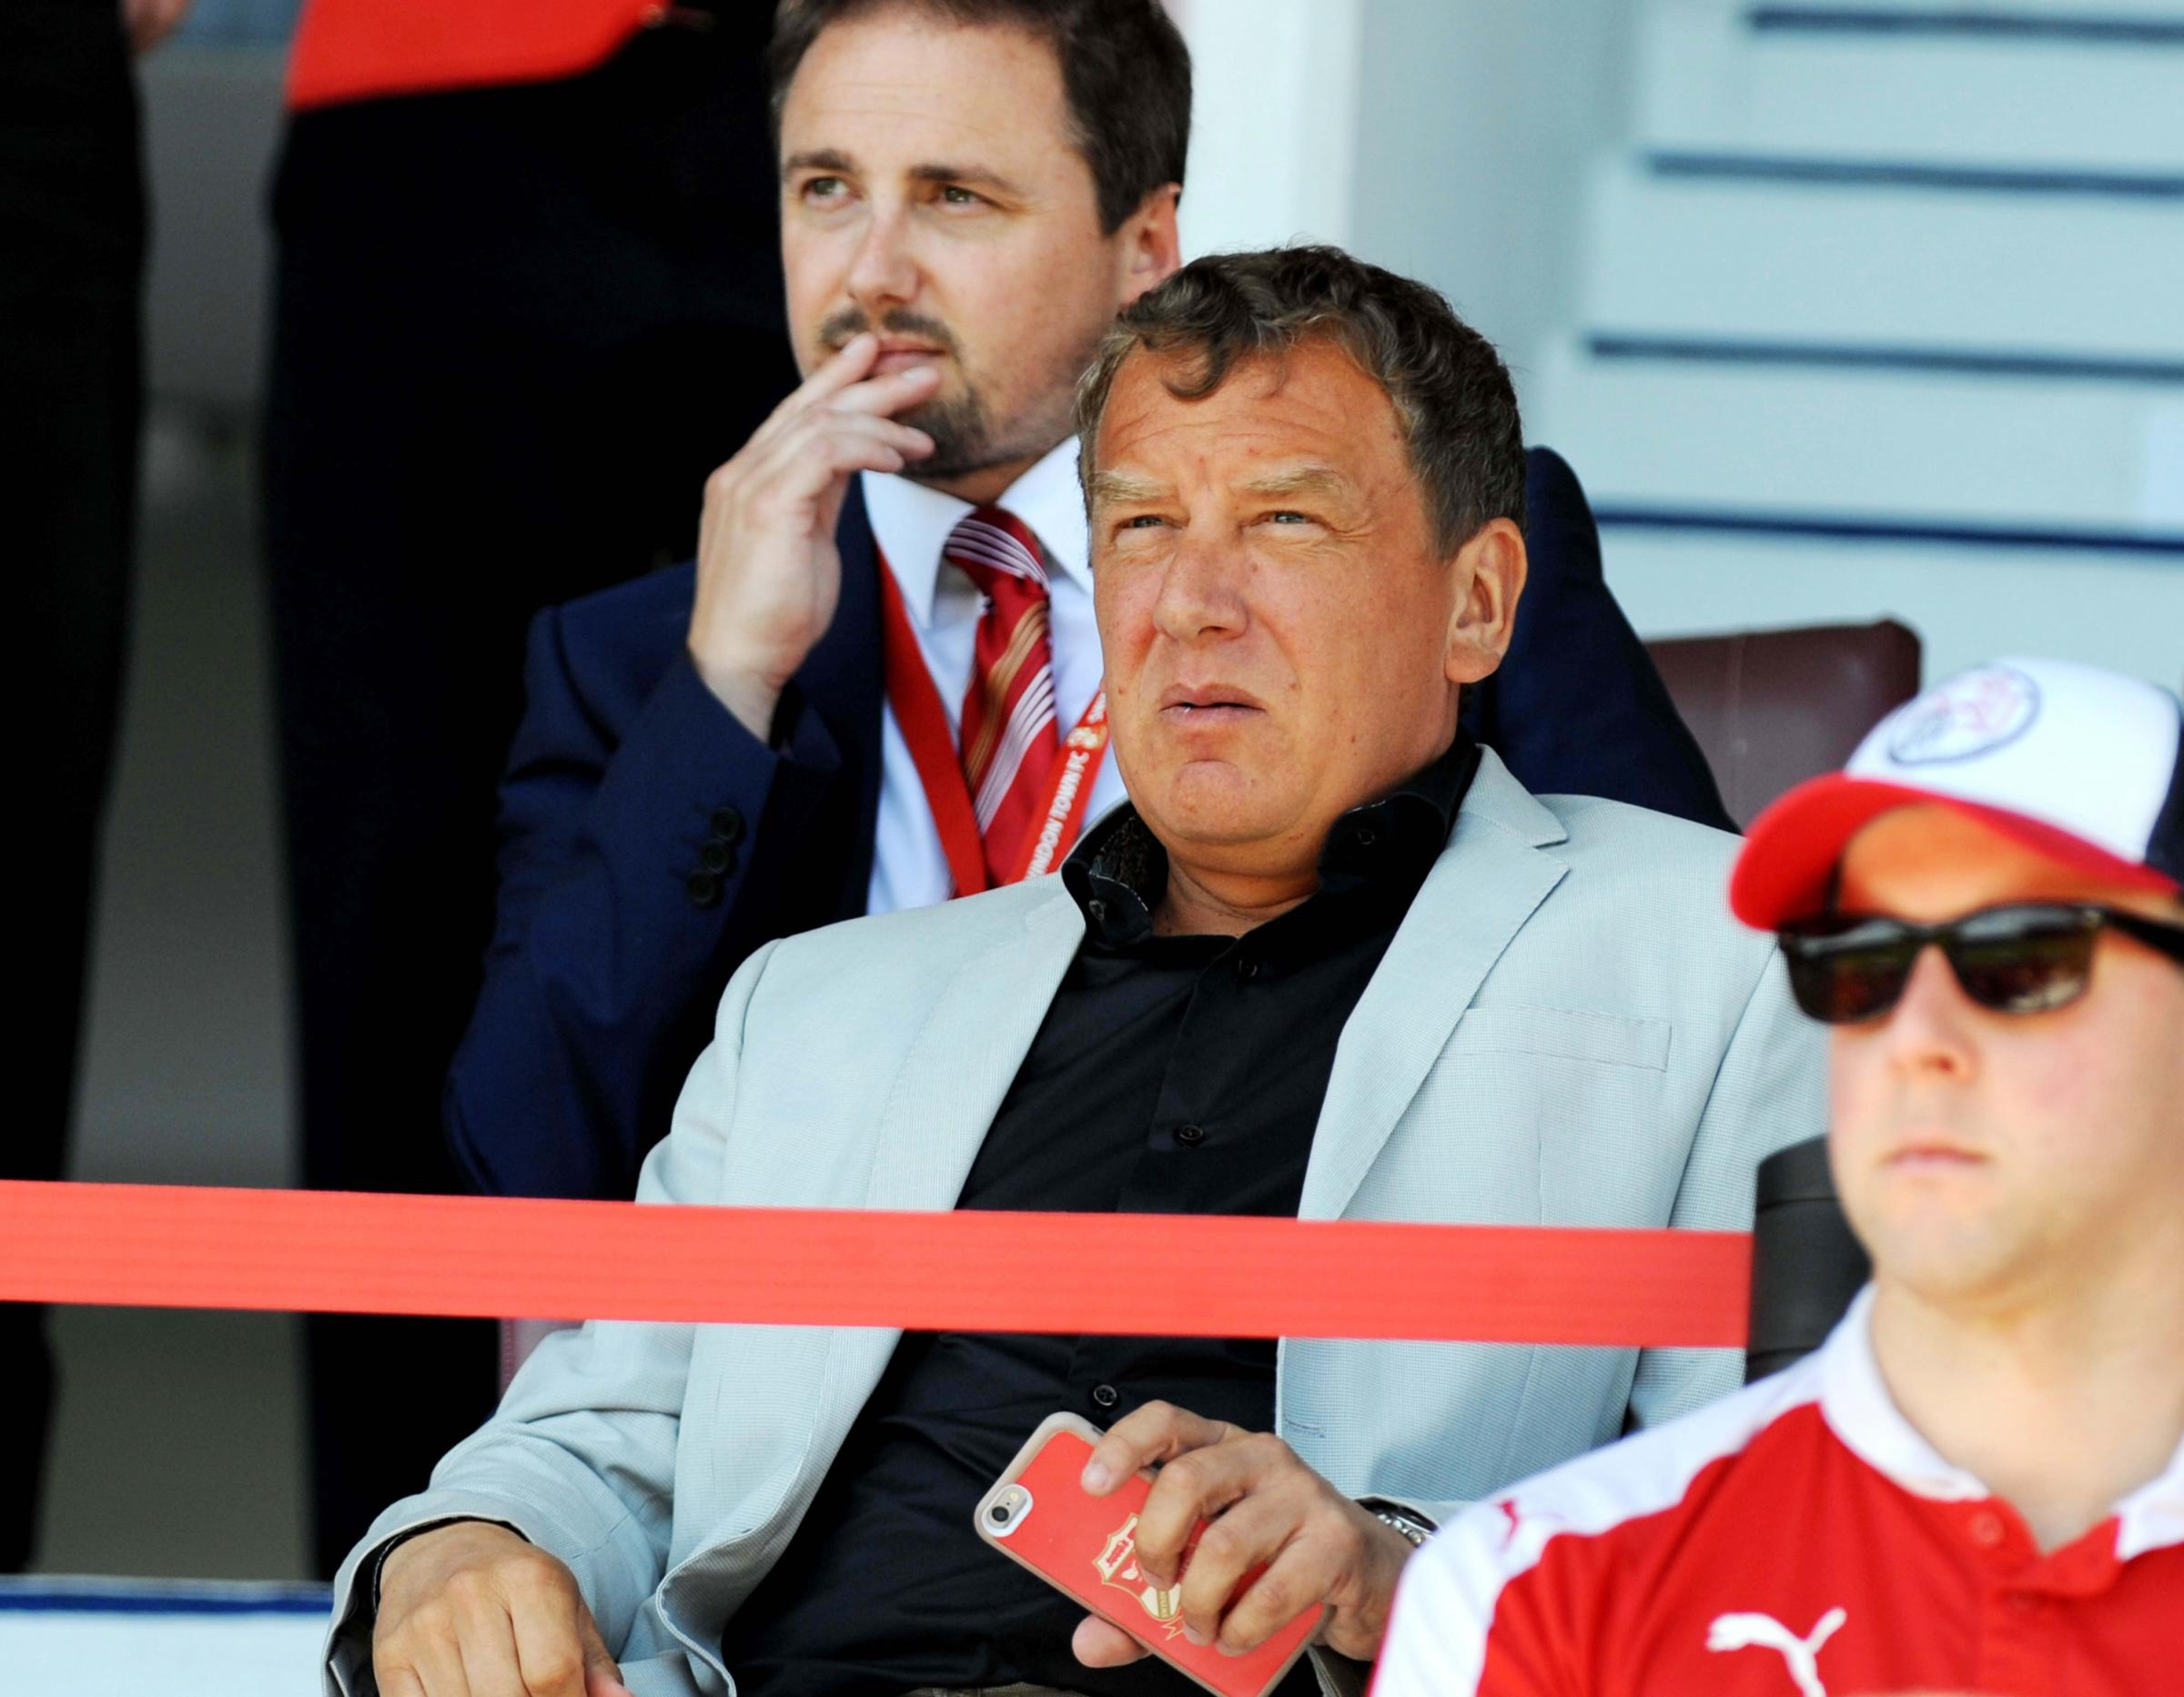 Swindon Town chairman Lee Power with chief executive Steve Anderson behind